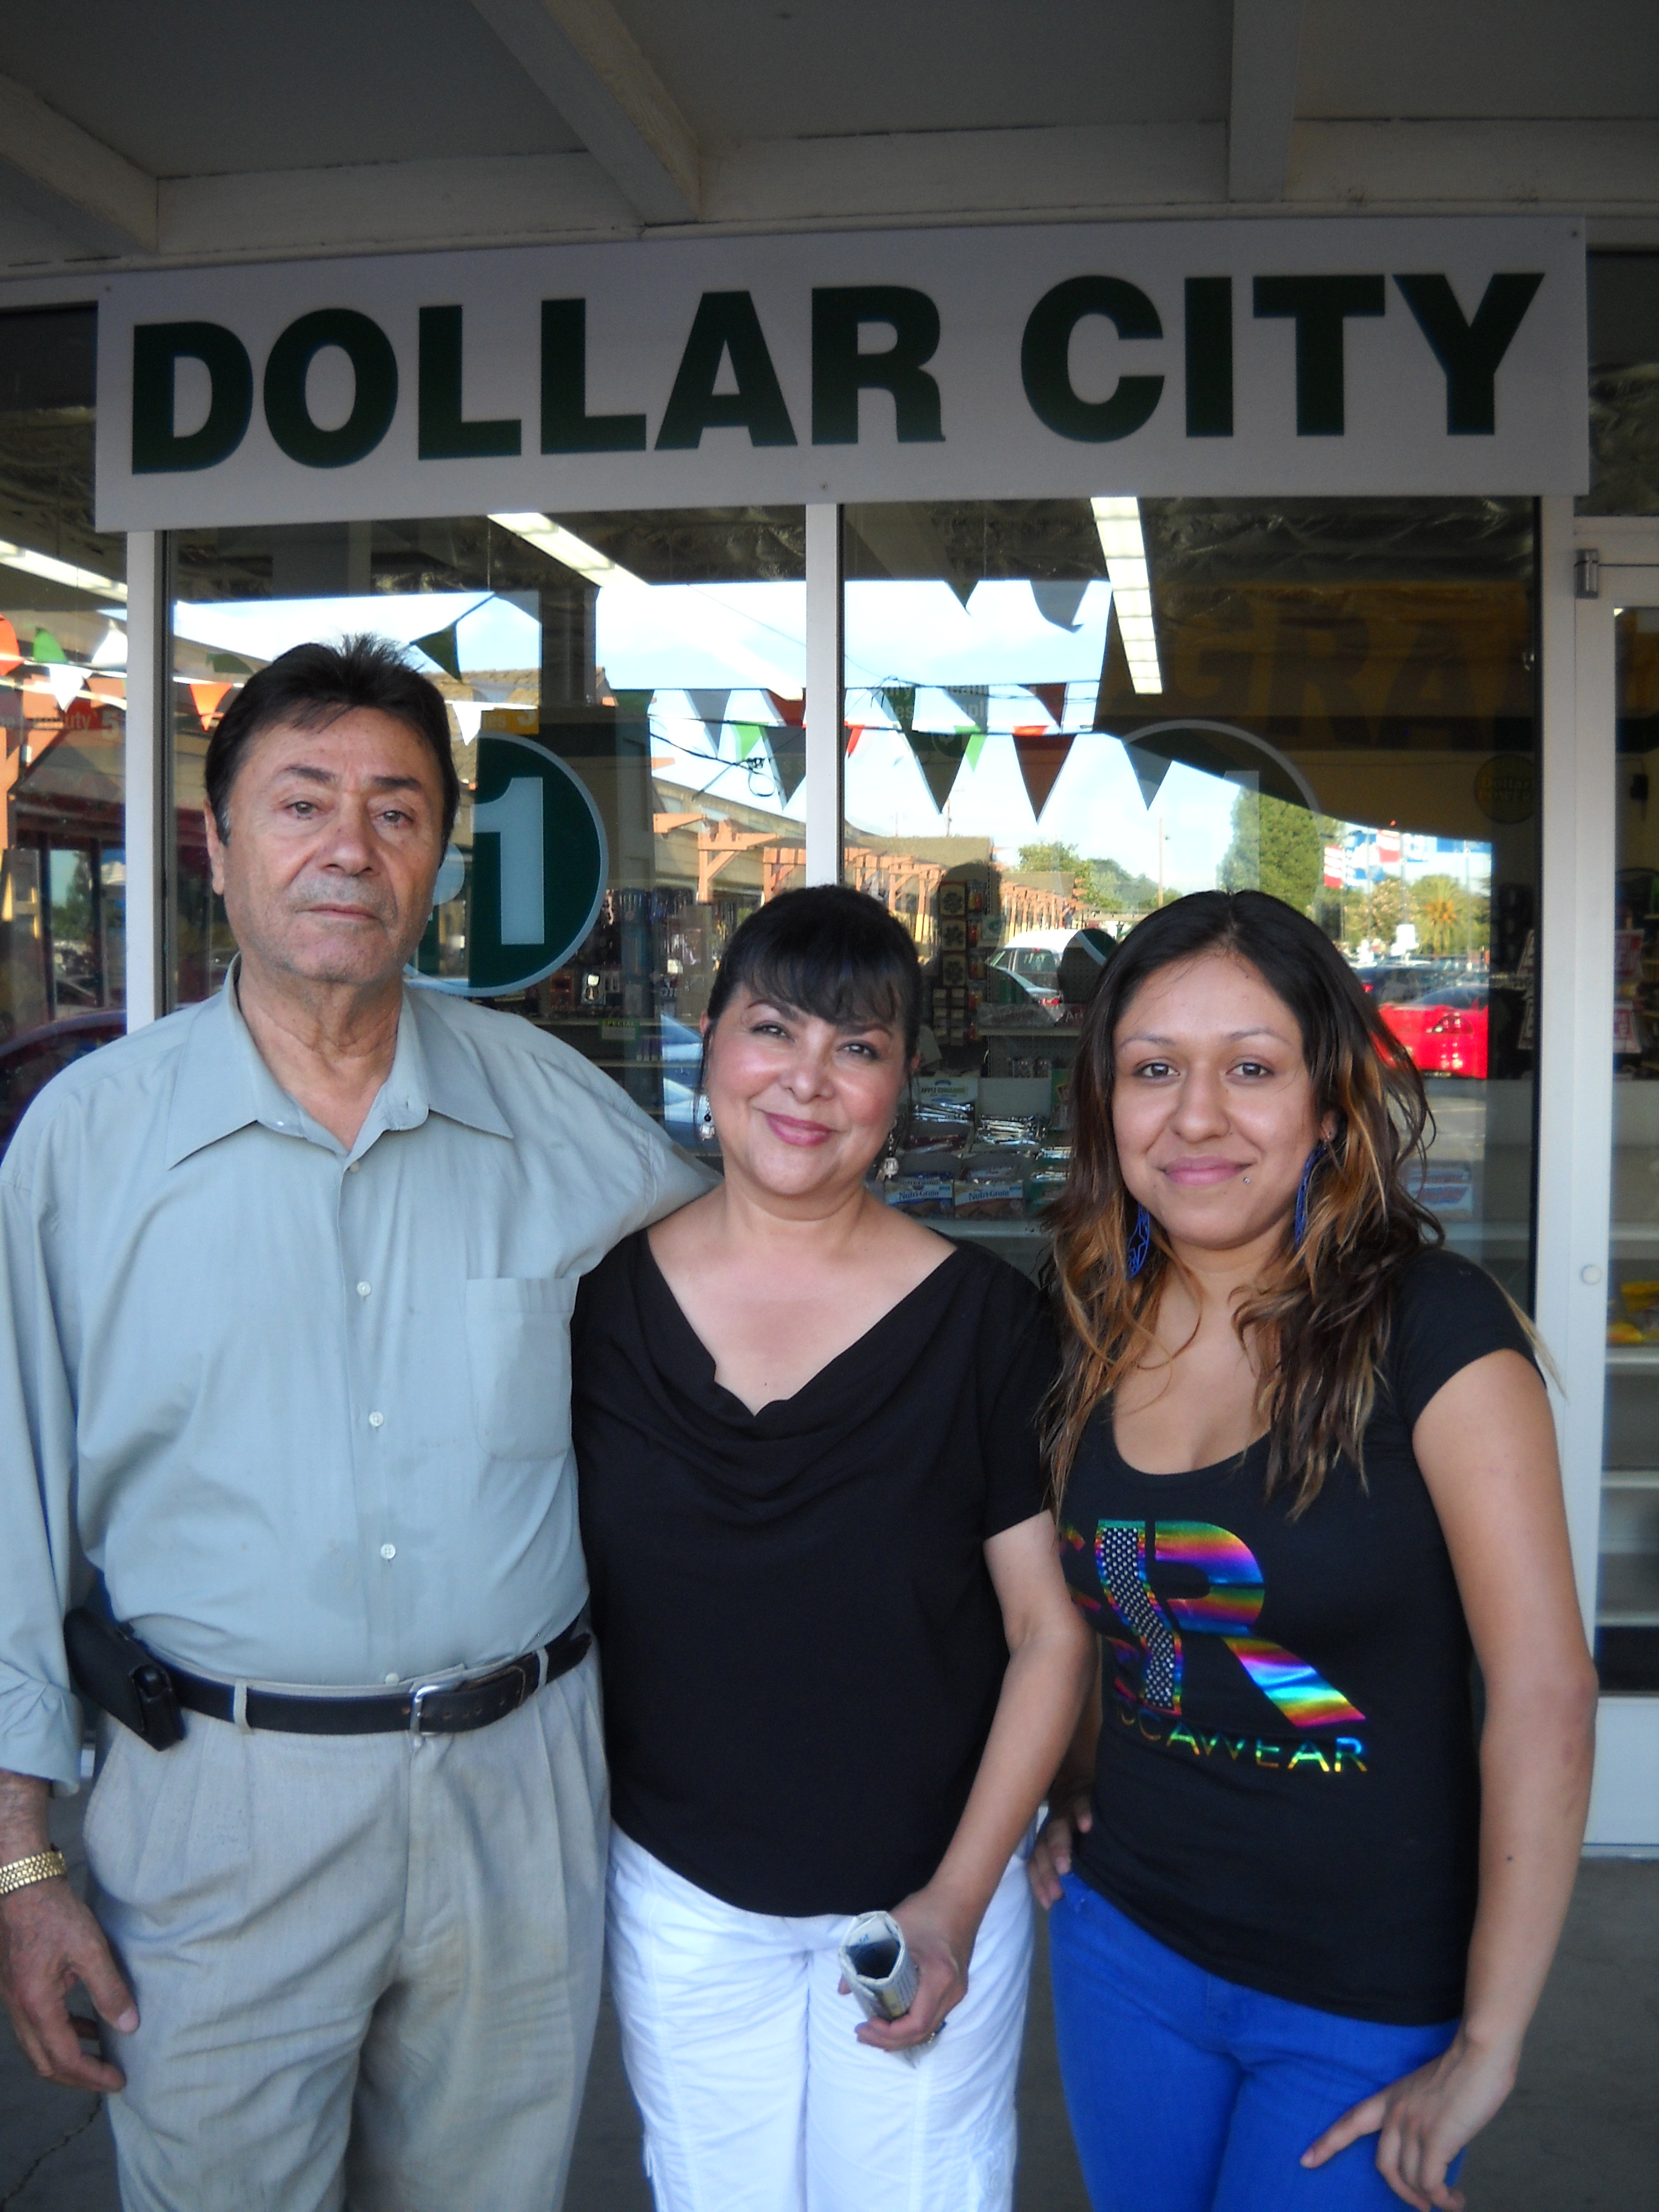 Dollar City owners mgr Dollar City Opens at 18th and A Streets in Antioch